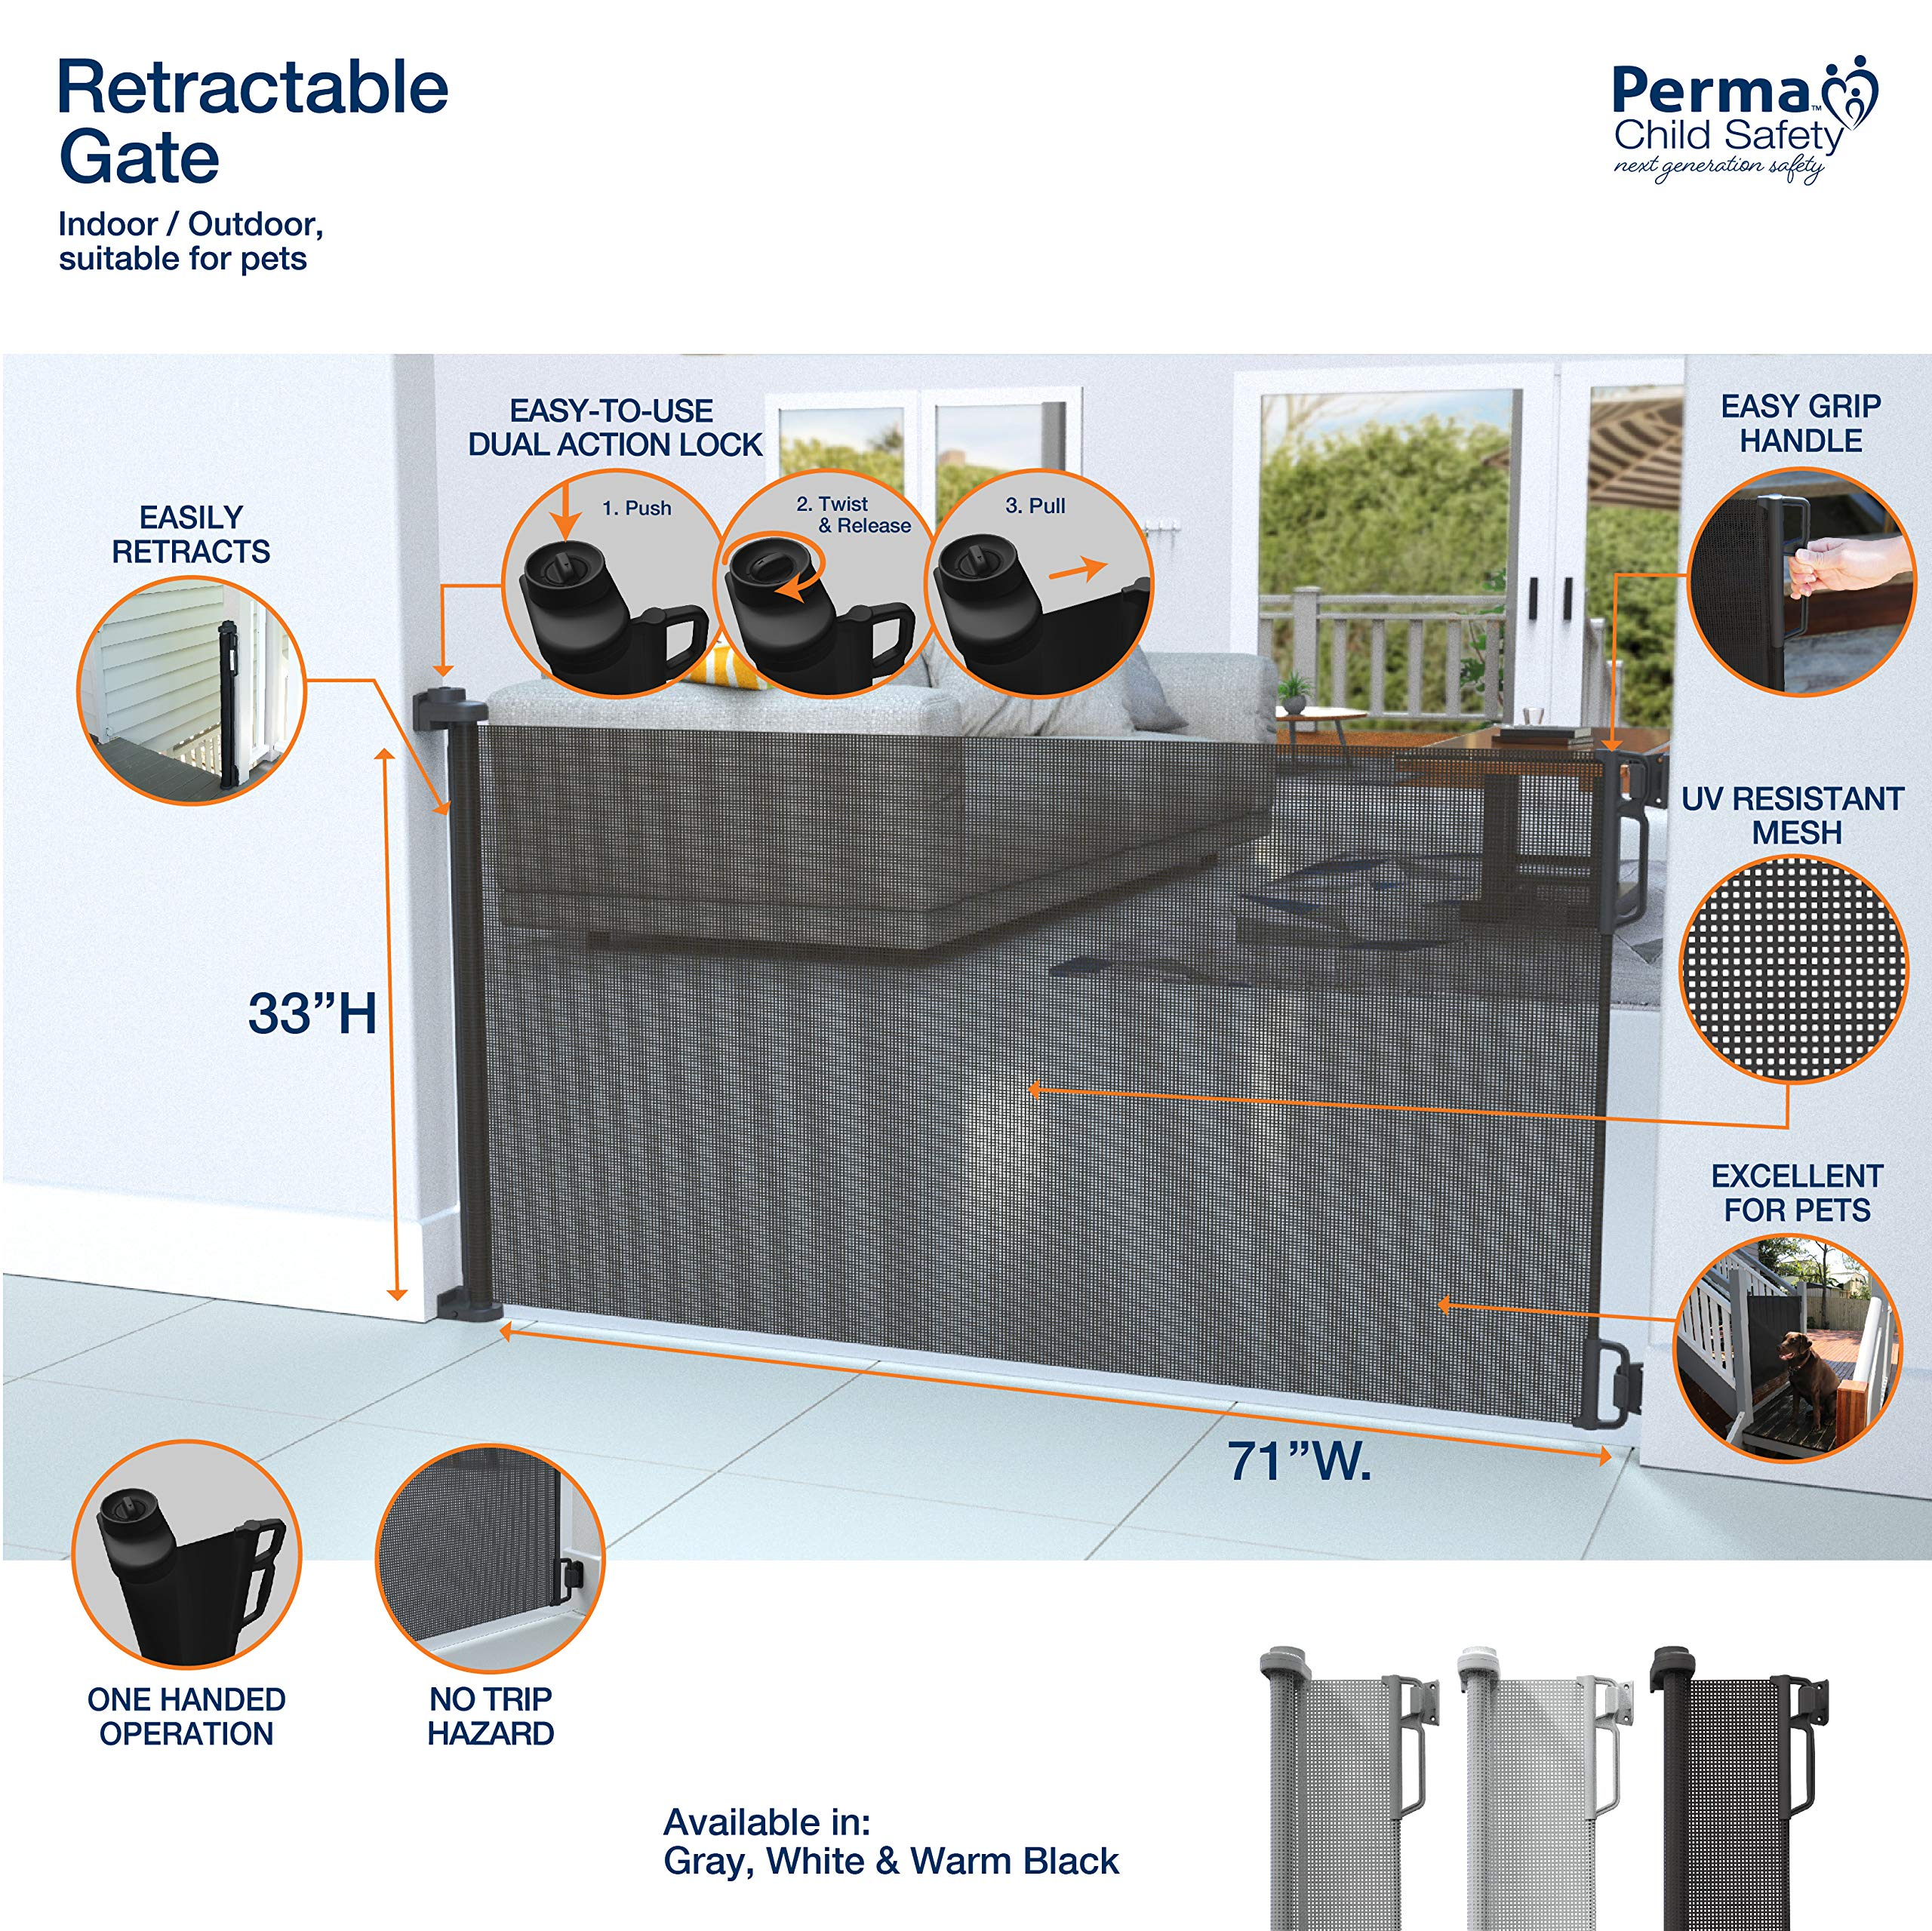 """Perma Child Safety Outdoor Retractable Baby Gate, Extra Wide up to 71"""", Black by Perma Child Safety (Image #3)"""